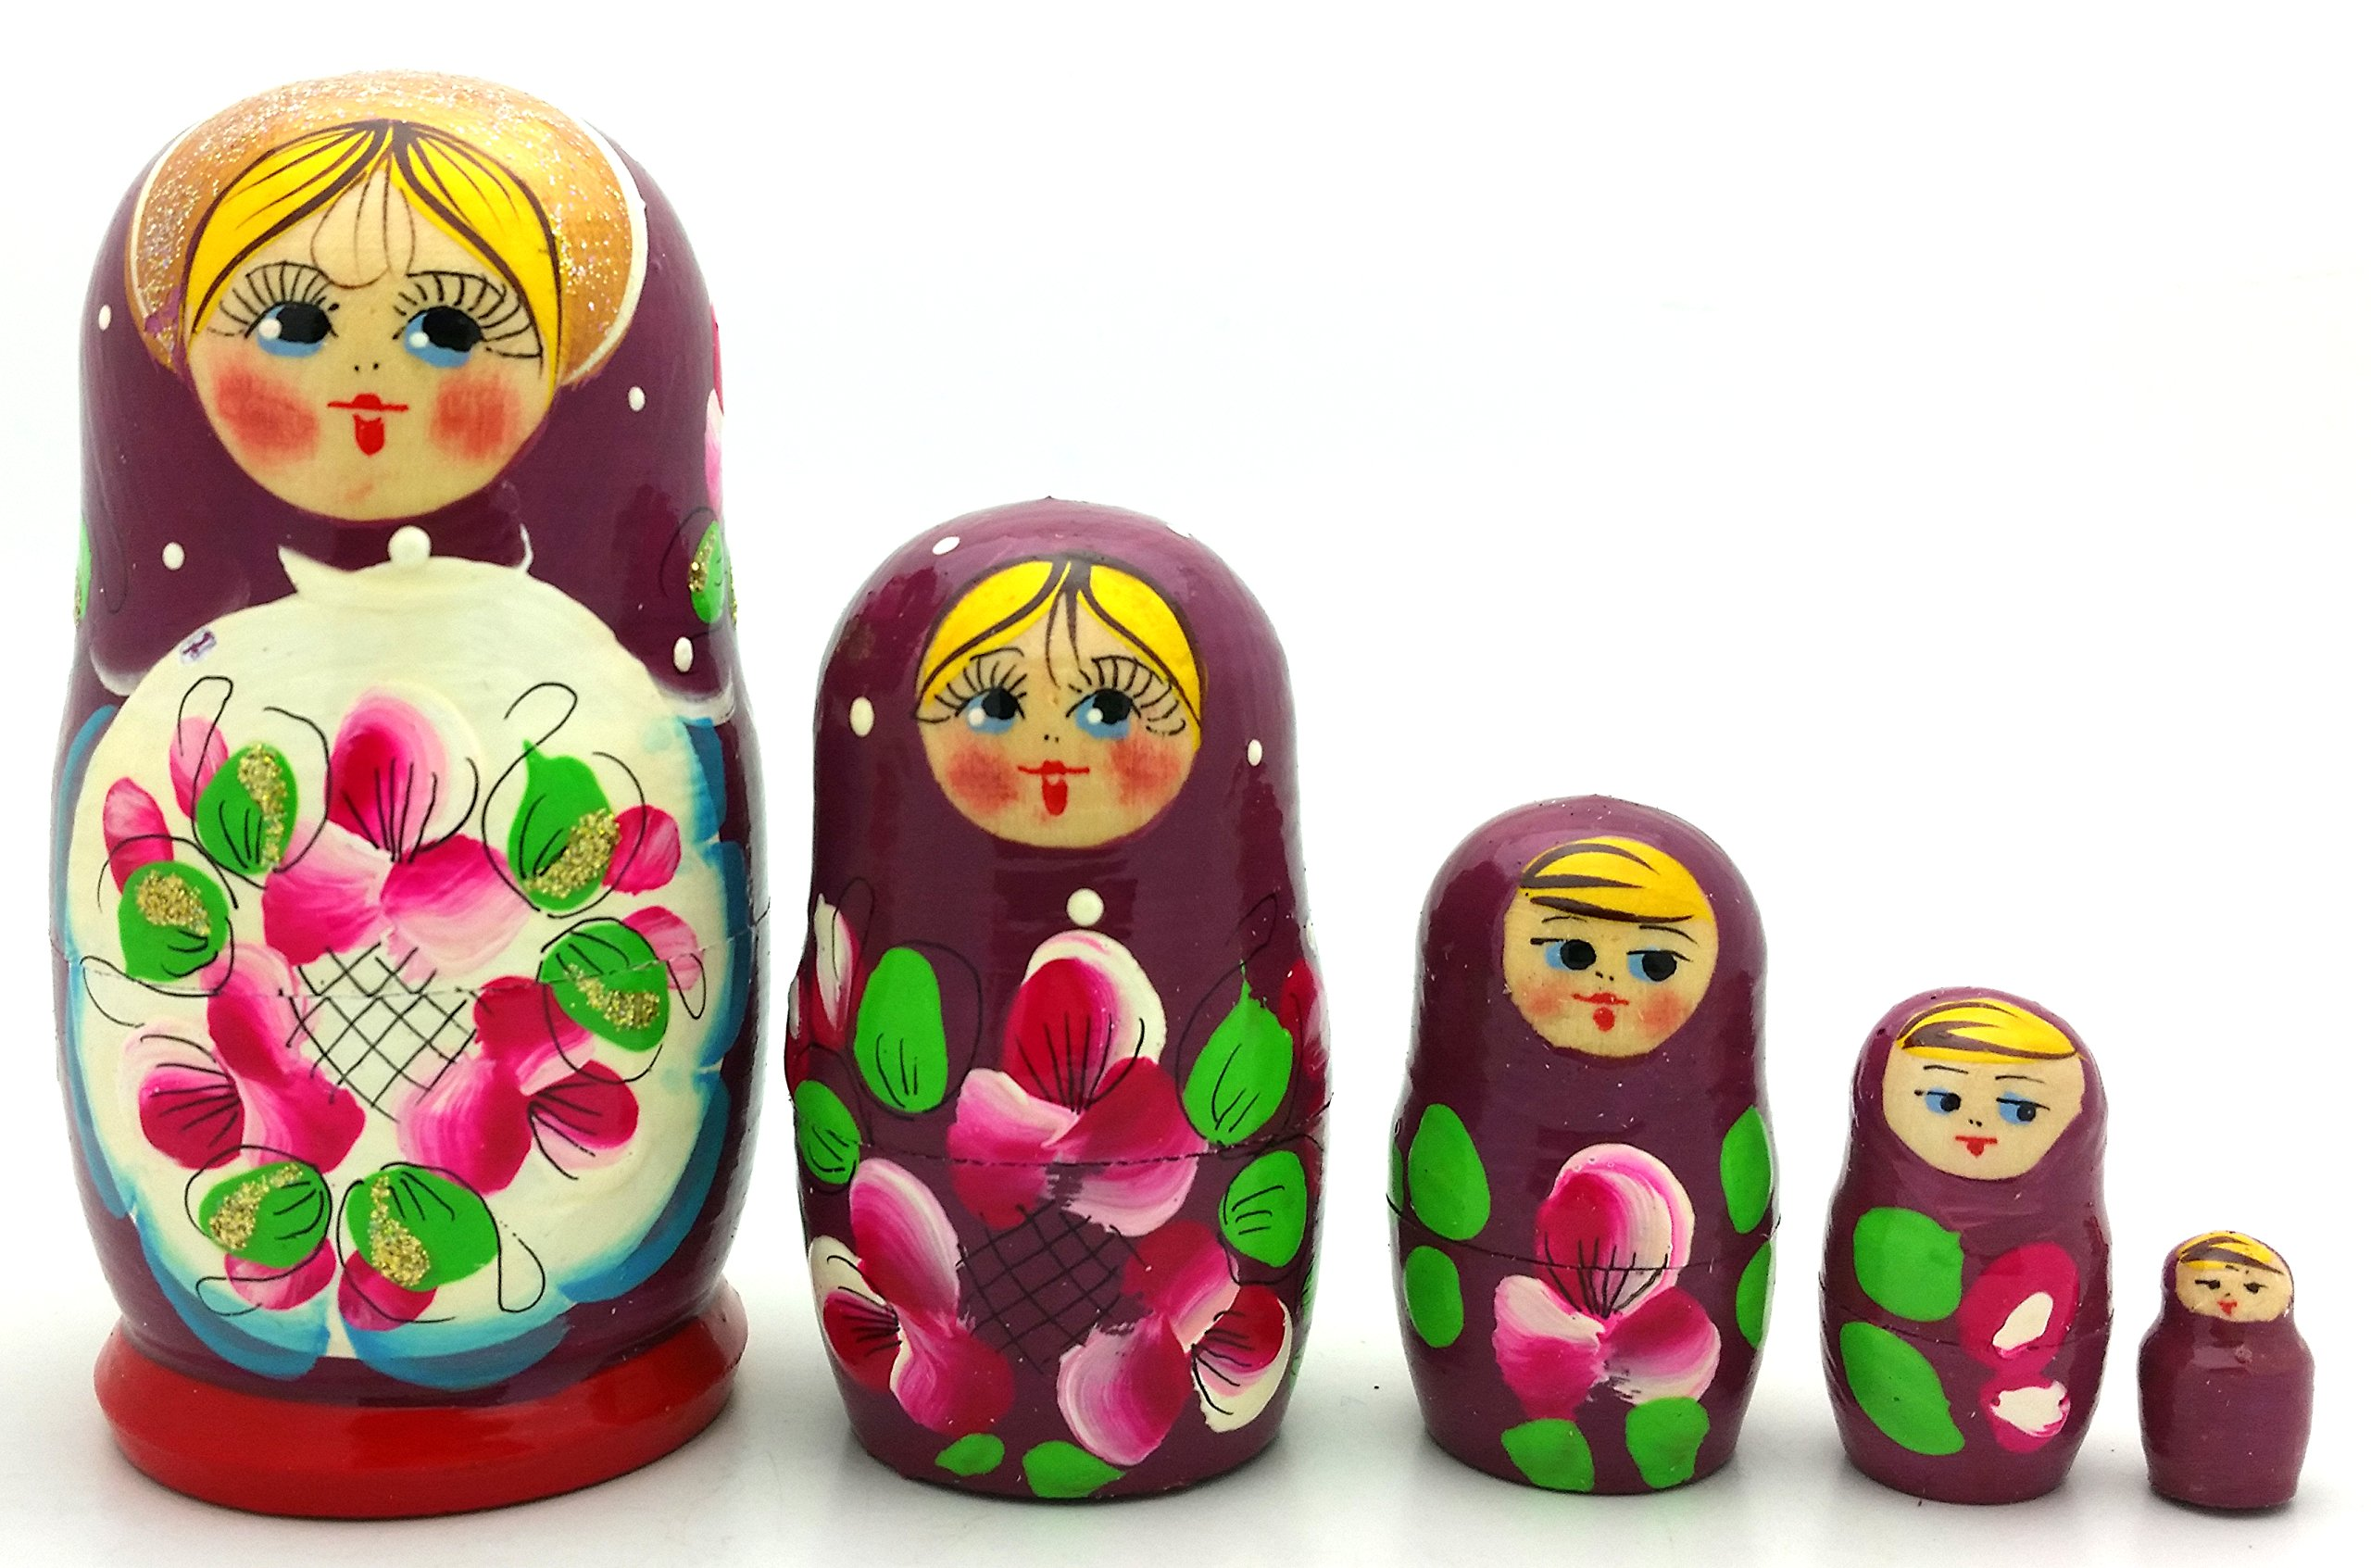 Lot of 3 Sets Russian Traditional Nesting Stacking Wooden Dolls Each Matryoshka Babushka set contains 5 dolls by BuyRussianGifts (Image #6)